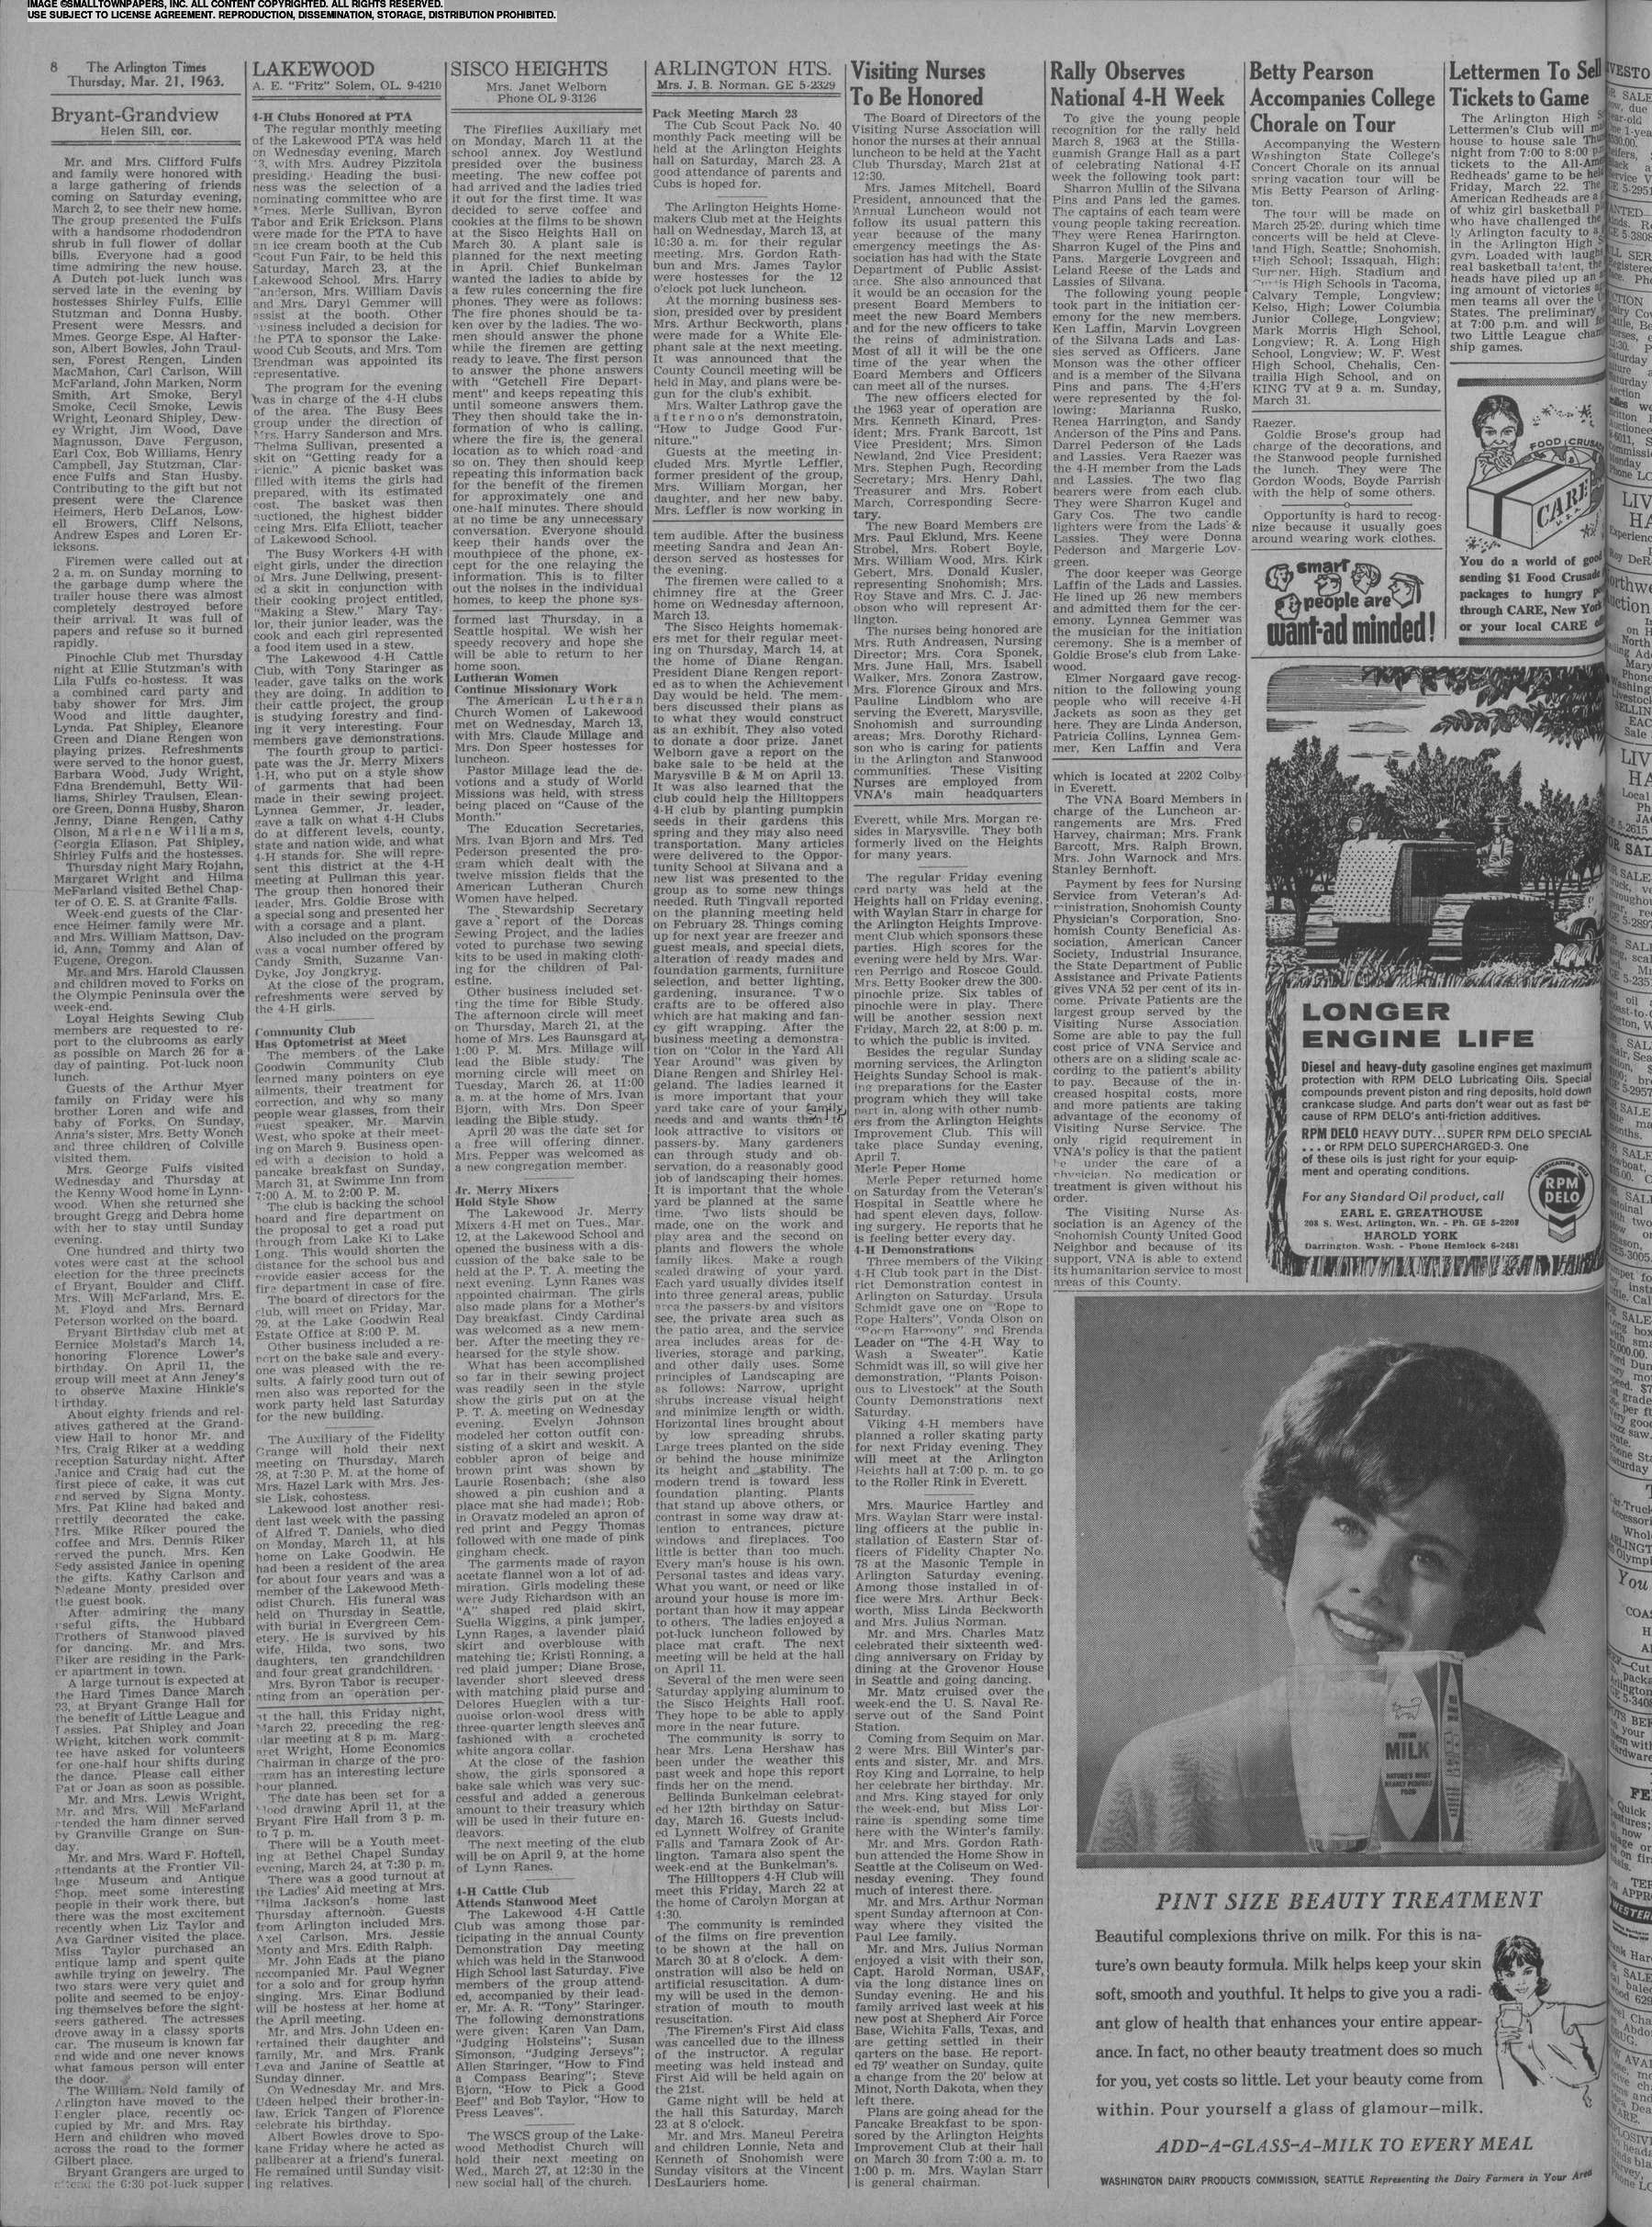 The Arlington Times March 21, 1963: Page 8